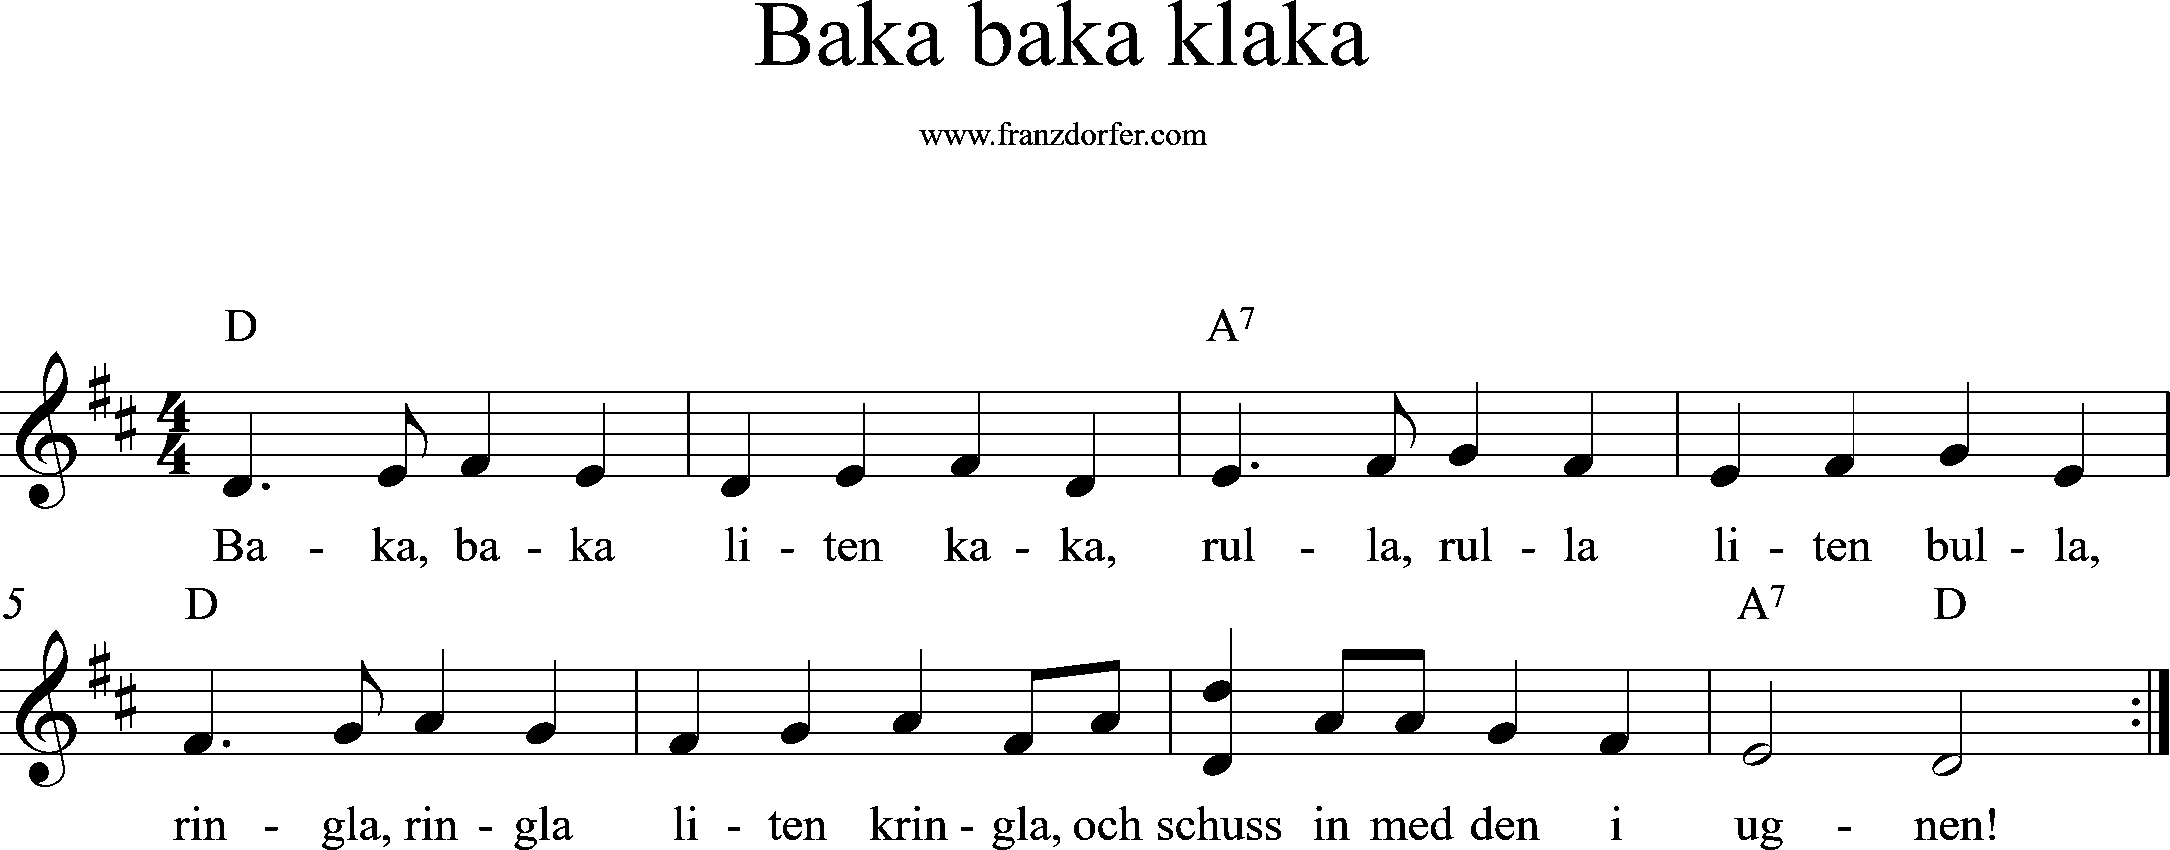 sheetmusic, baja baka